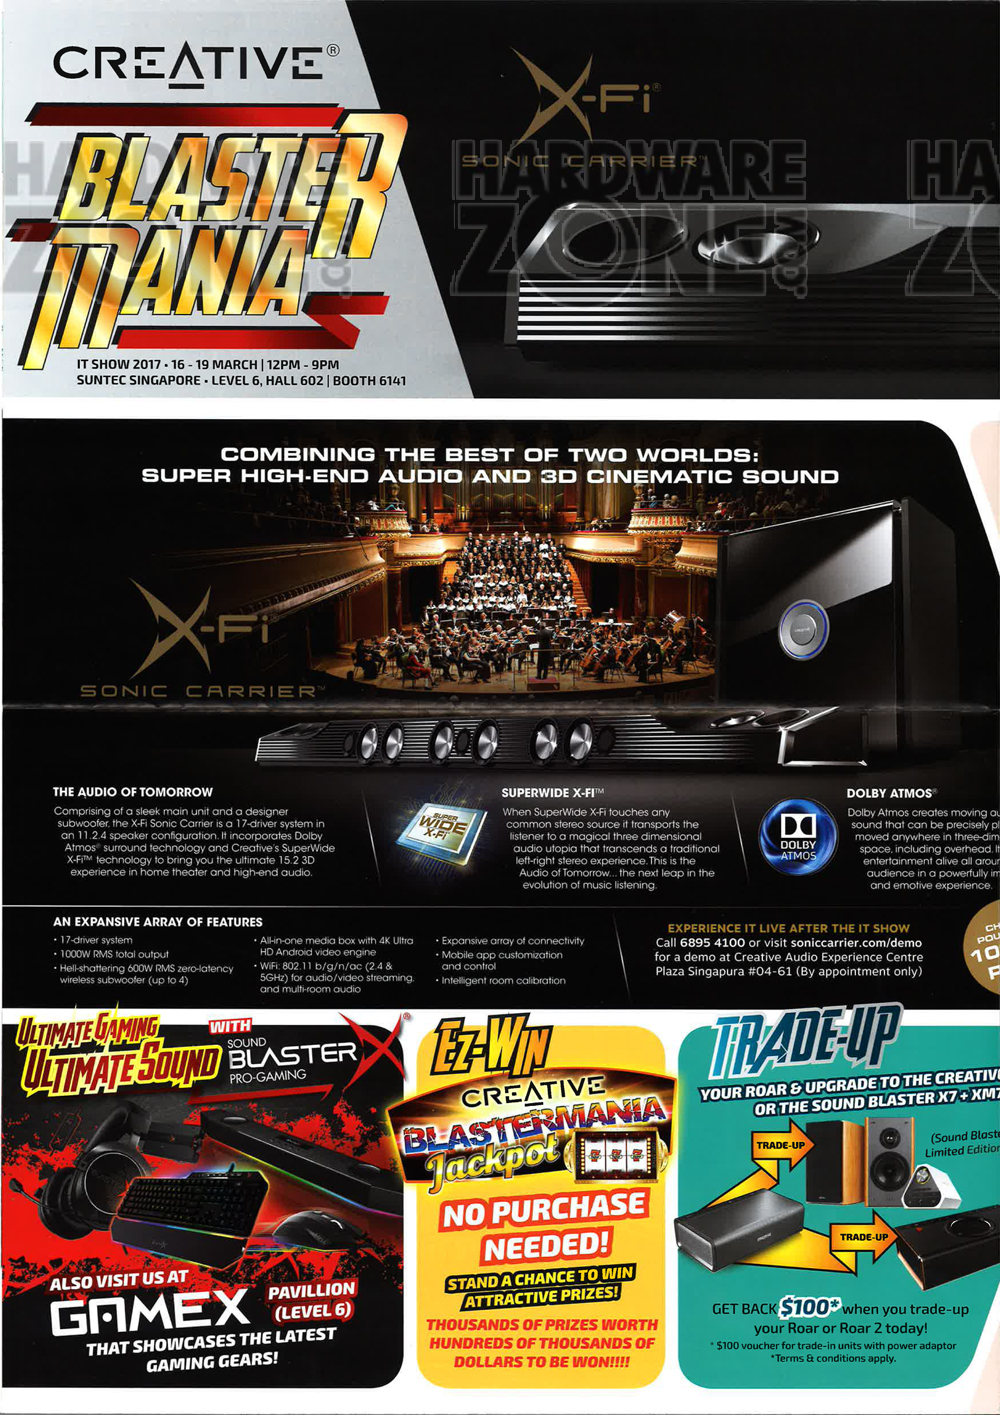 Asus gaming desktops amp monitors brochures from cee show 2016 singapore - Creative Page 1